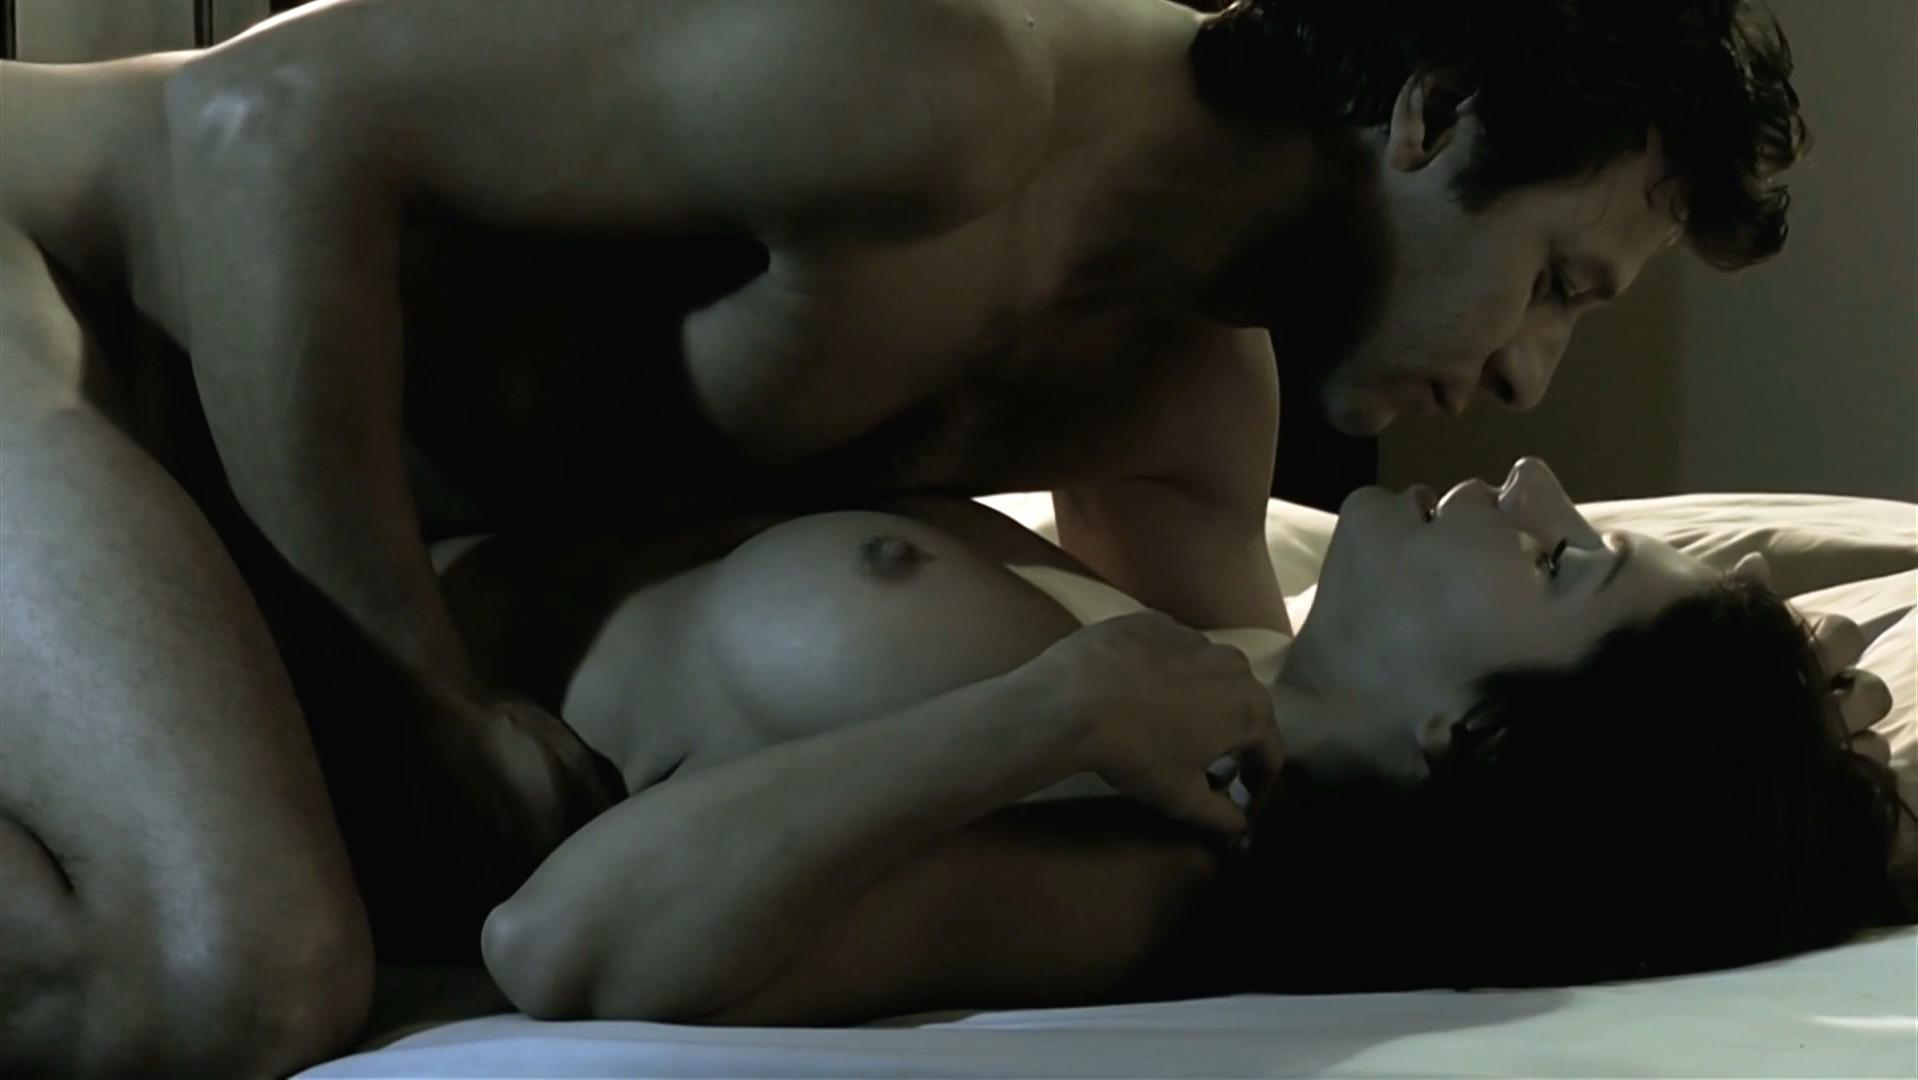 Andrea Montenegro nude - Wake Up and Die (2011)